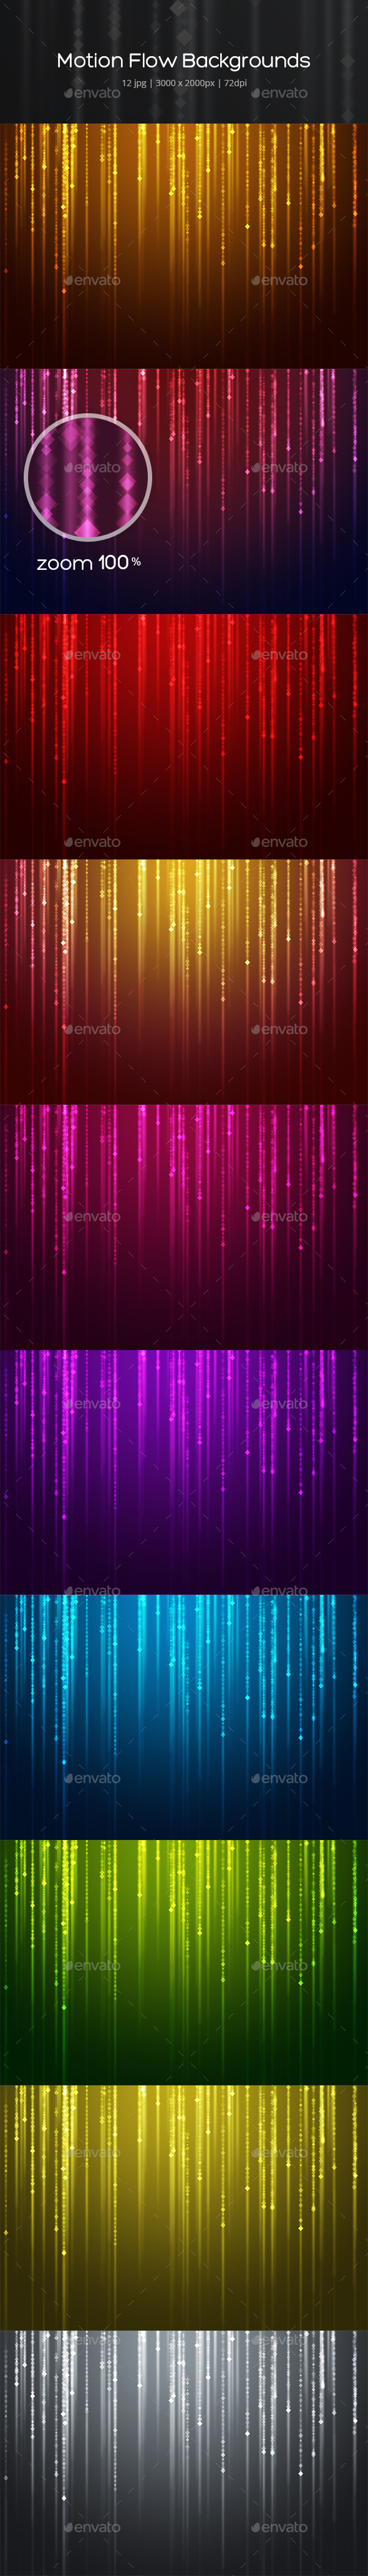 GraphicRiver Motion Flow Backgrounds 20477731